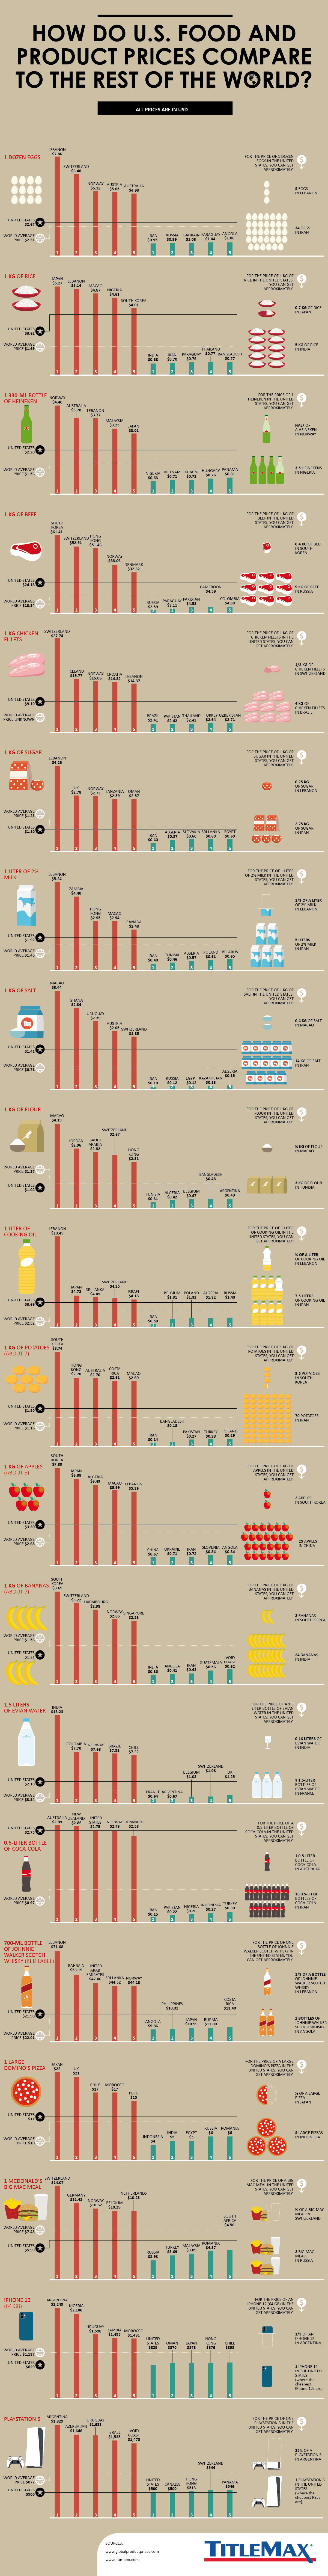 Comparing U.S. Food and Product Prices to the Rest of the World